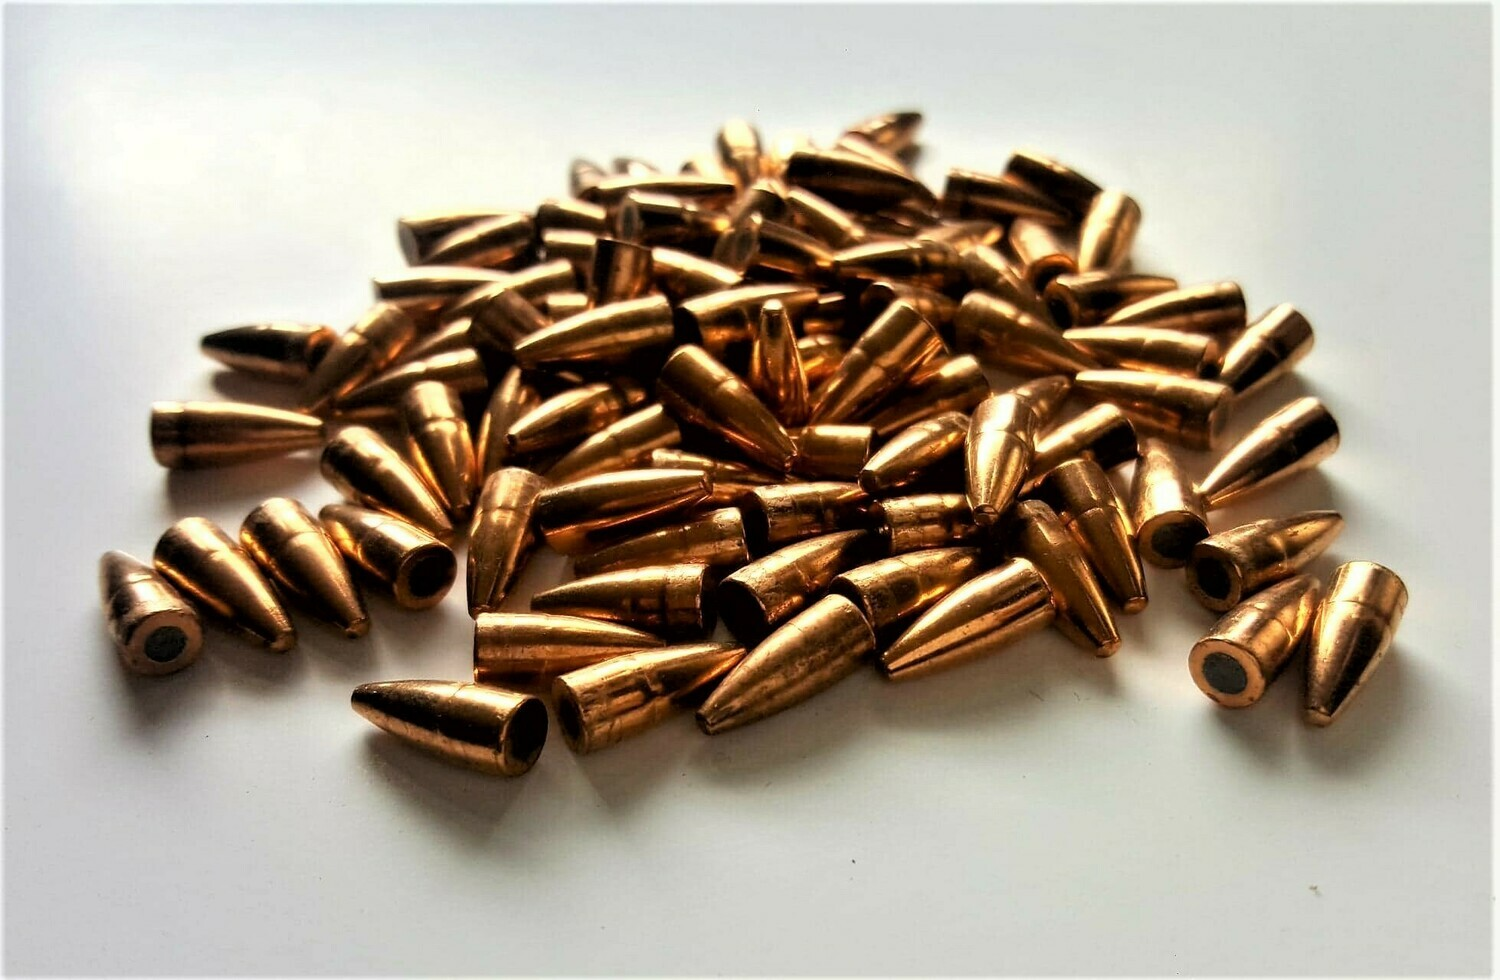 100-PULLED 40gr FMJ Exposed Core Bullets .224 Cal